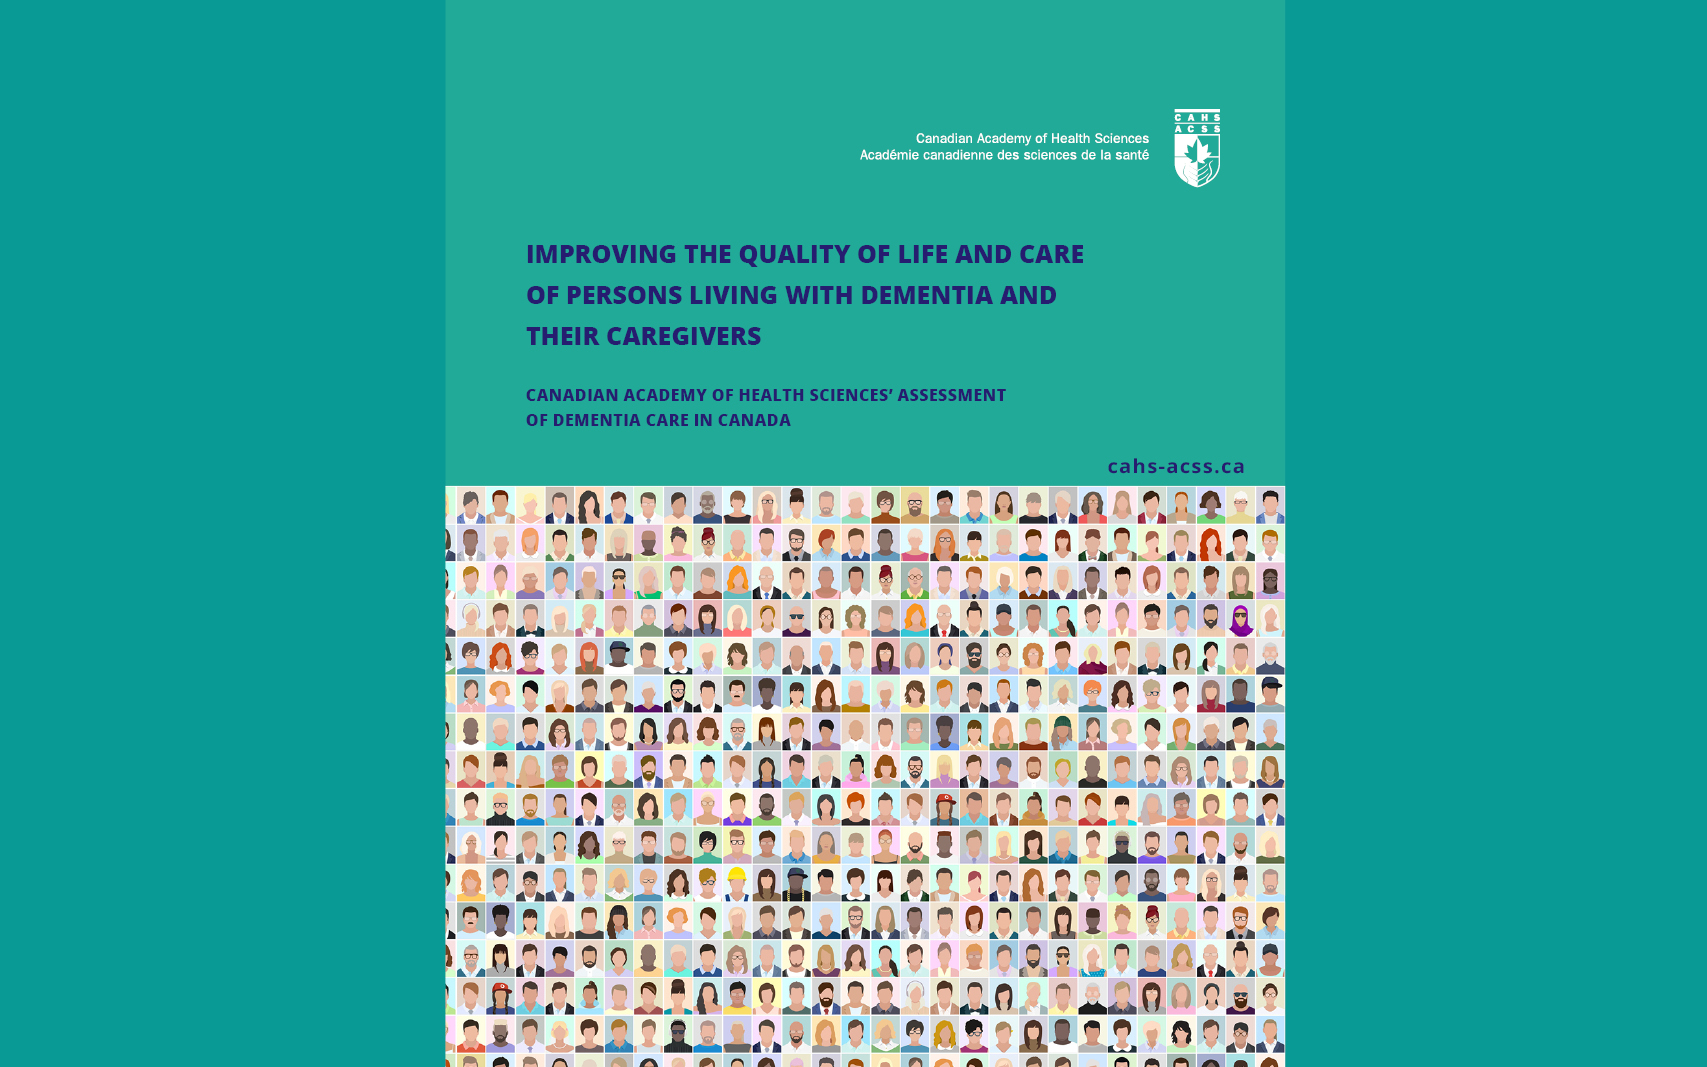 Improving the quality of life and care of persons living with Dementia and their caregivers